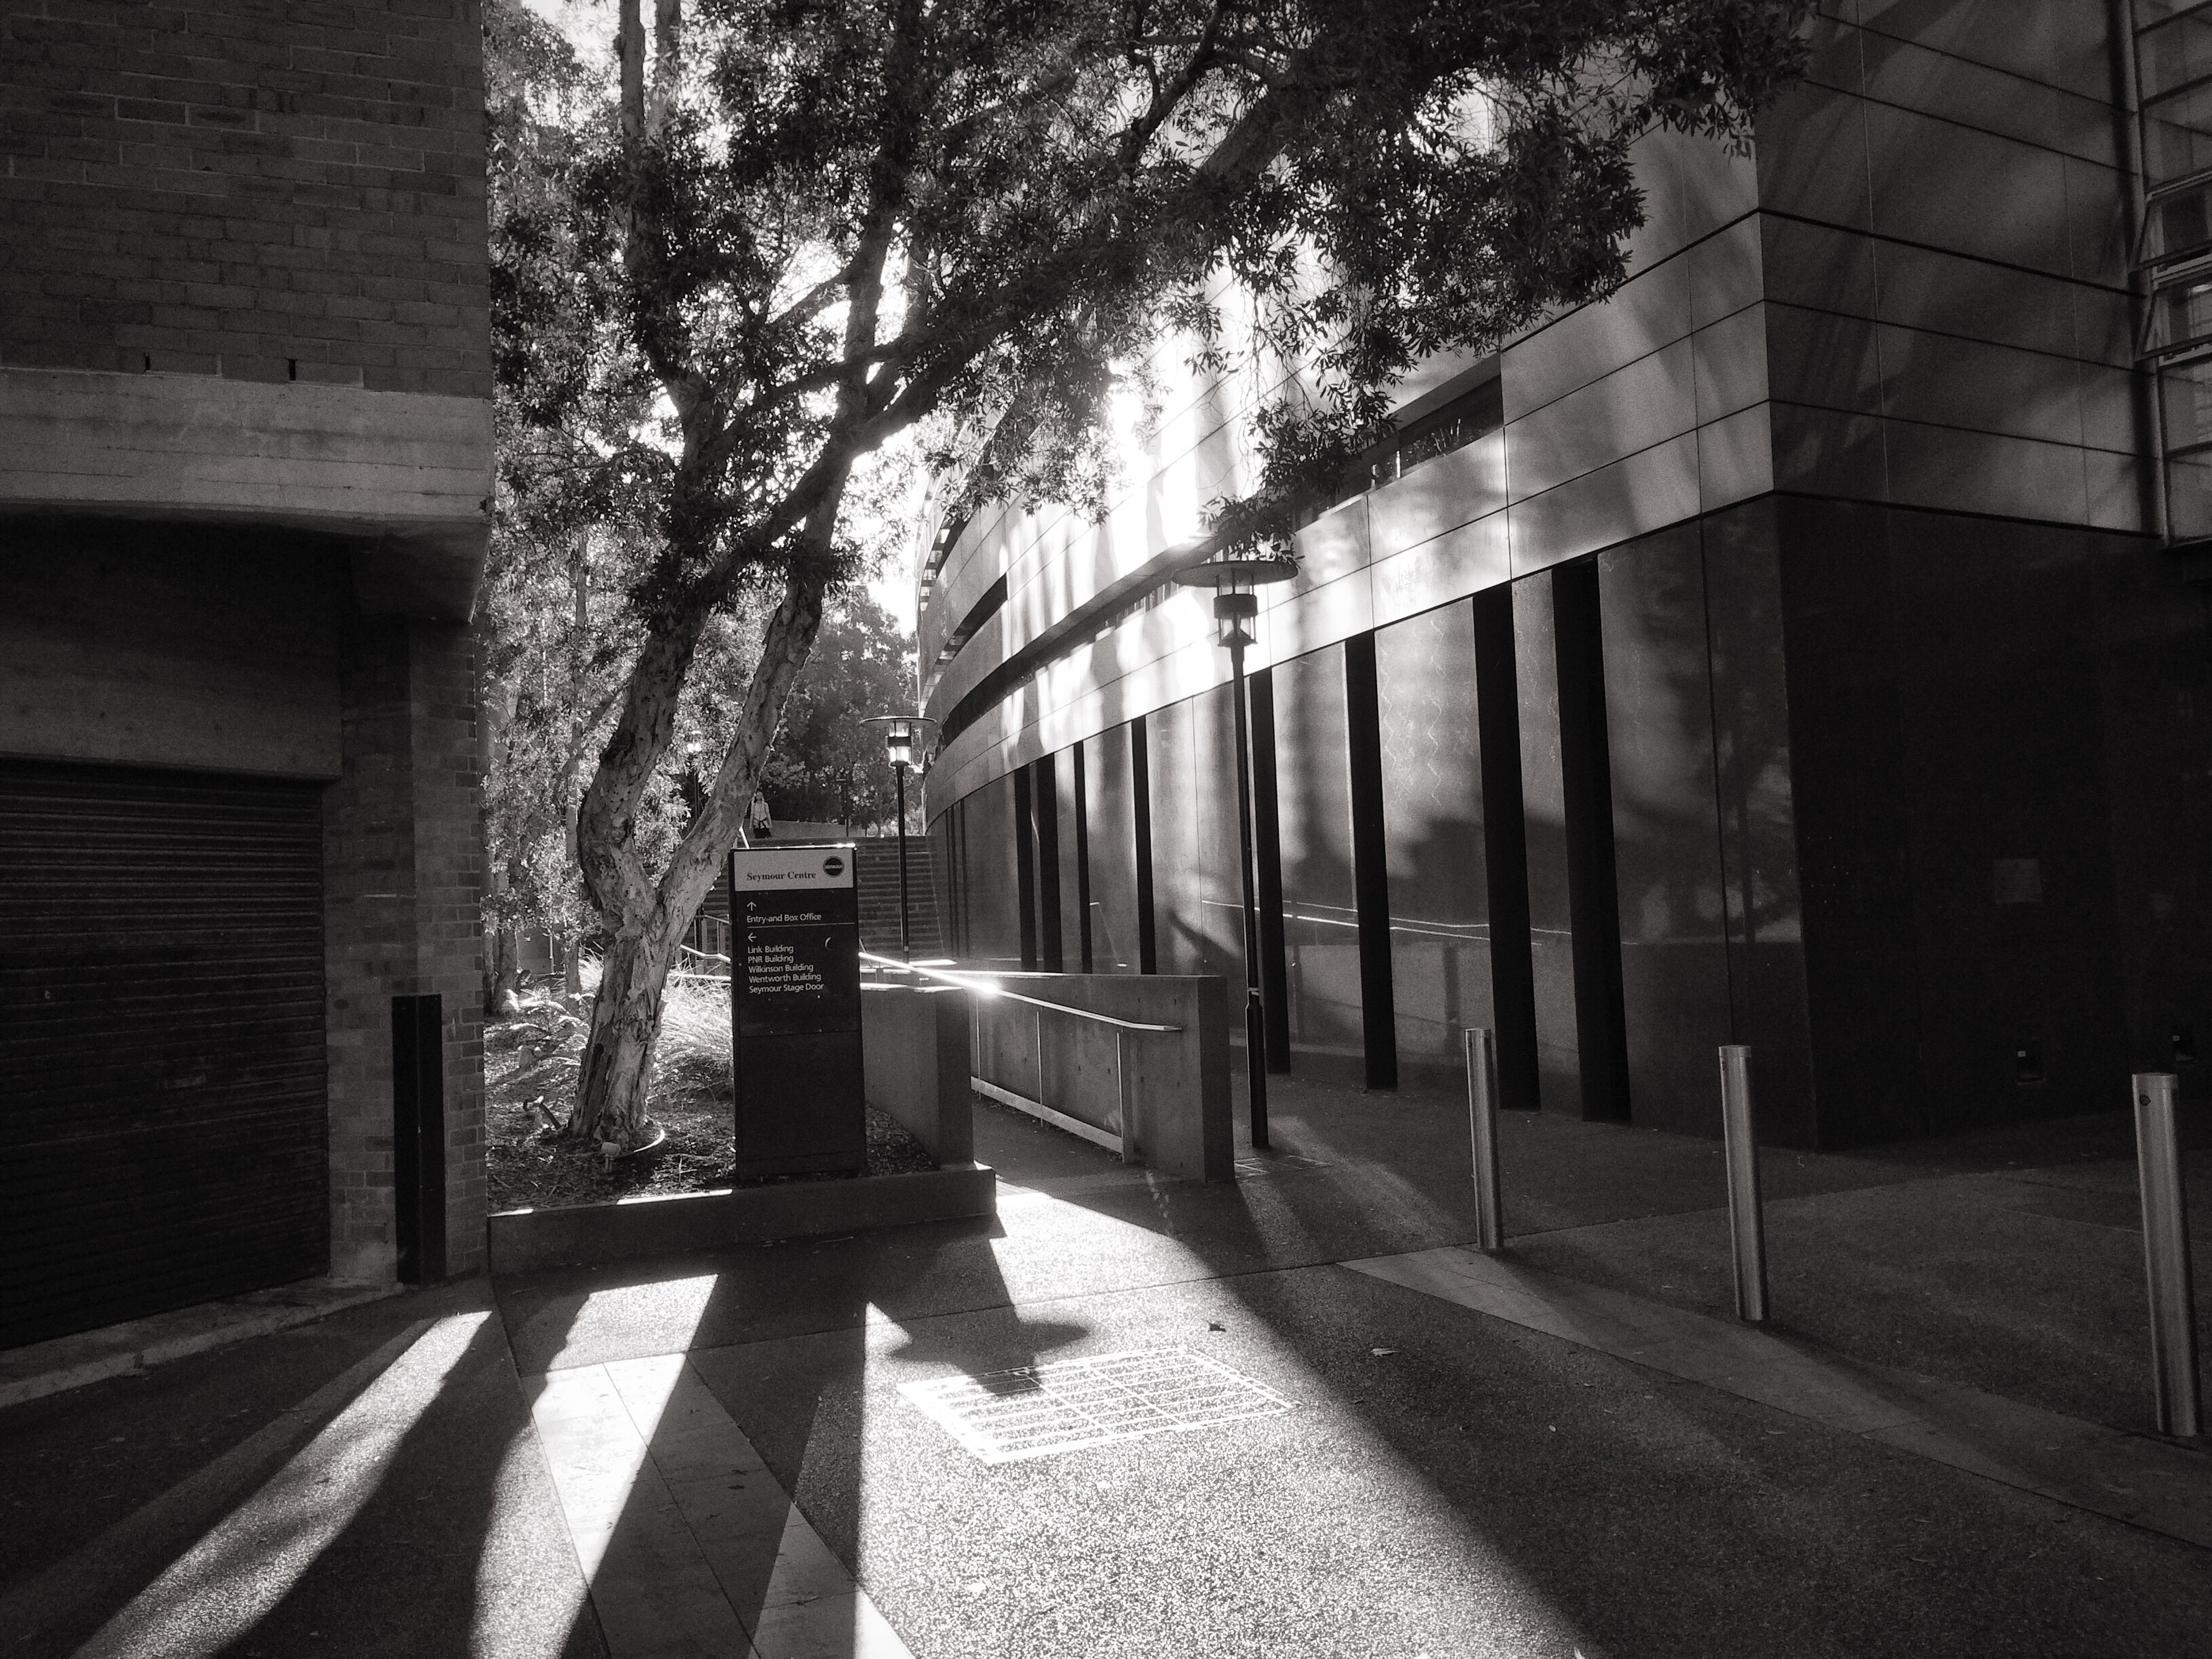 built structure, architecture, building exterior, shadow, tree, sunlight, empty, the way forward, footpath, street, sidewalk, city, day, walkway, building, wall - building feature, absence, bench, growth, outdoors